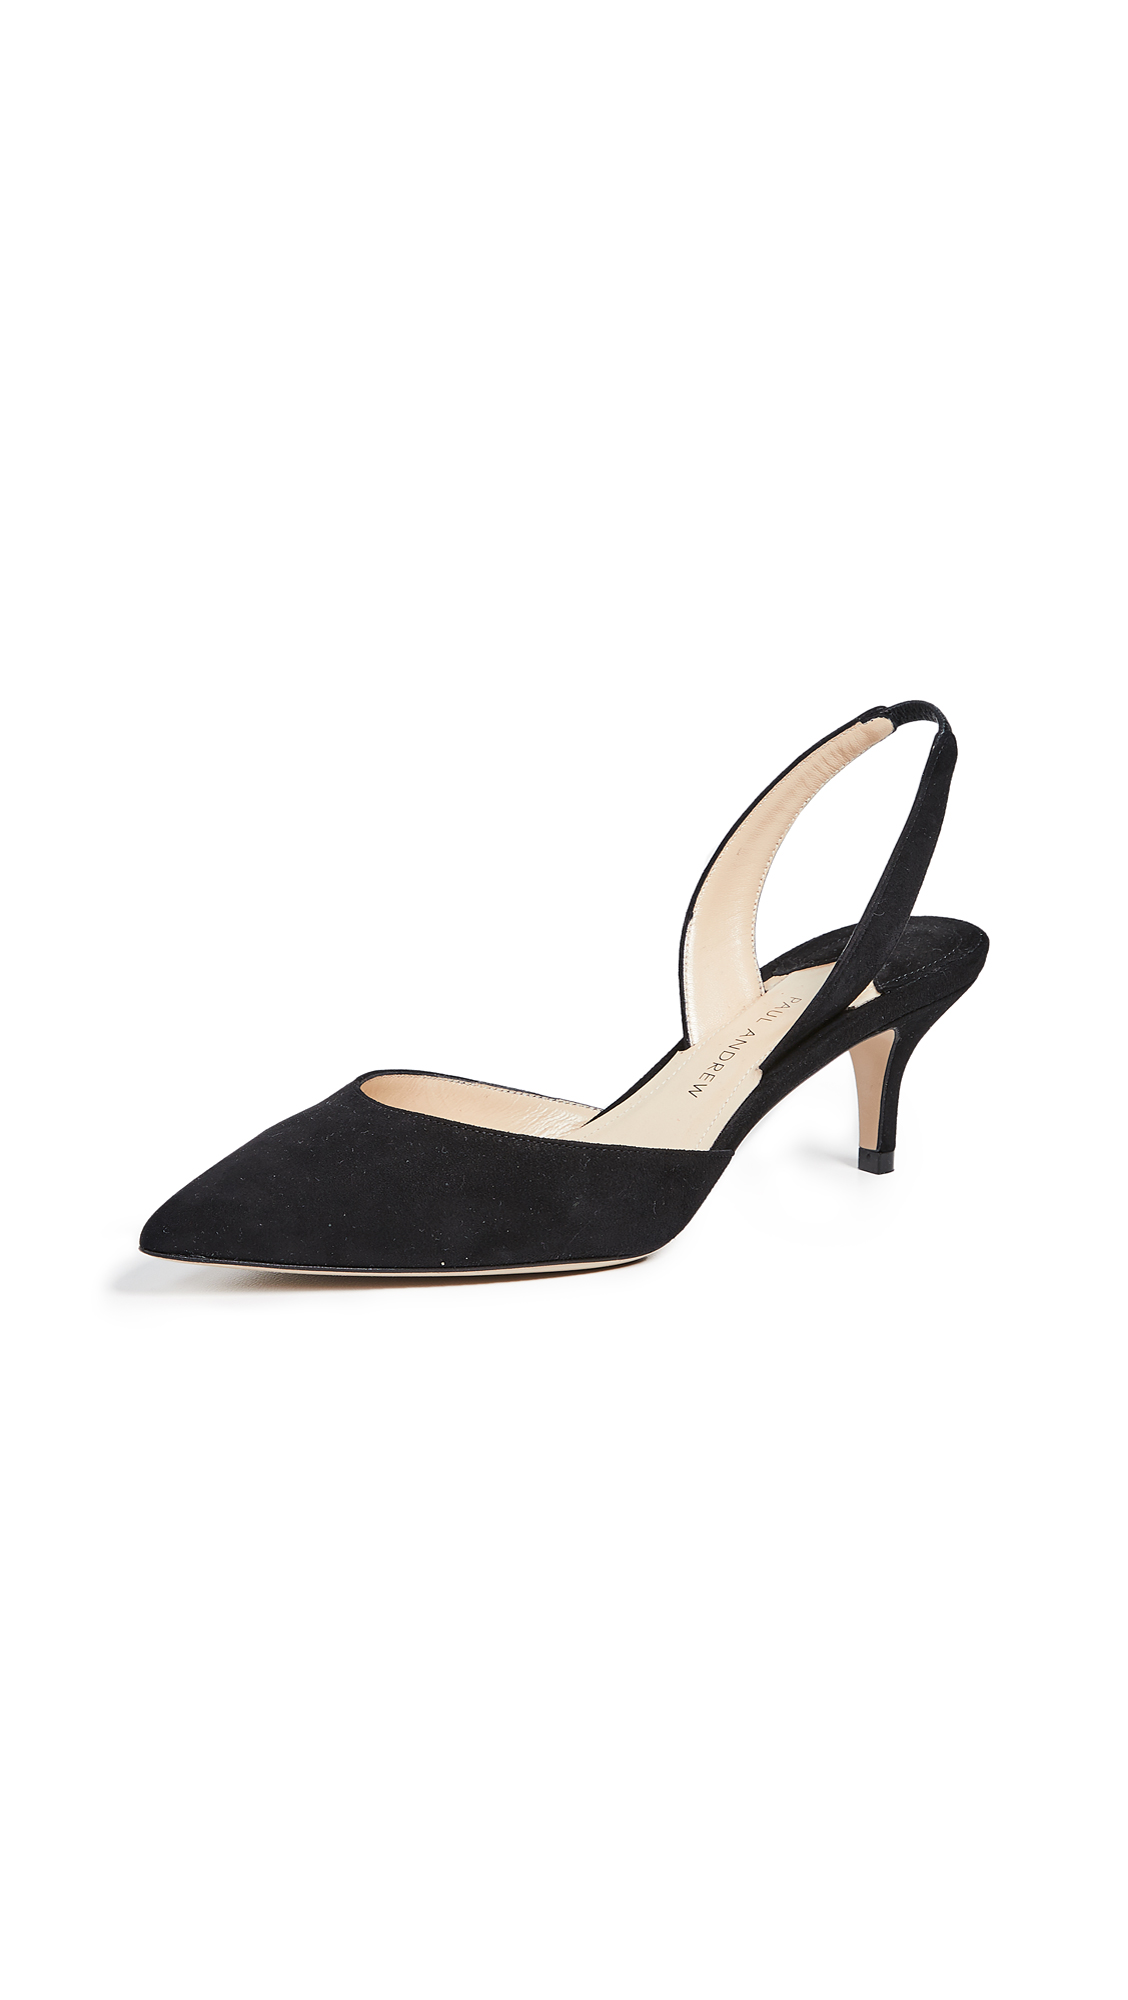 Paul Andrew Rhea 55 Slingback Pumps - Black